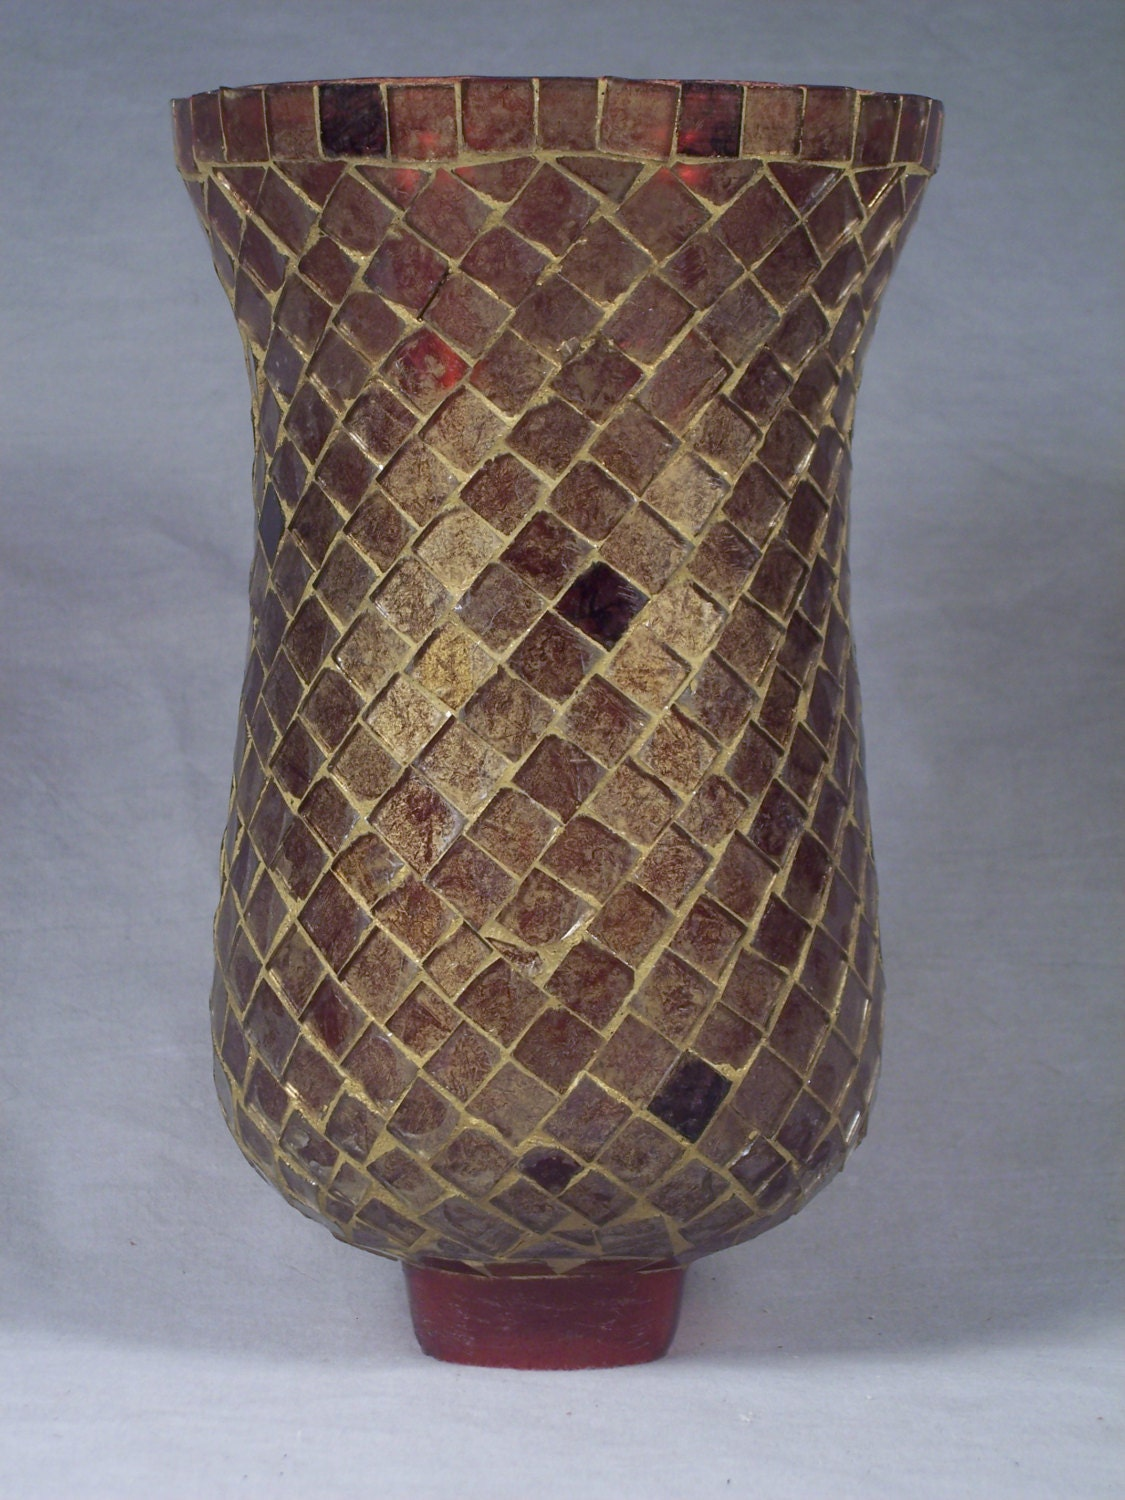 Glass Mosaic Hurricane Lamp Wall Sconce Replacement Shade